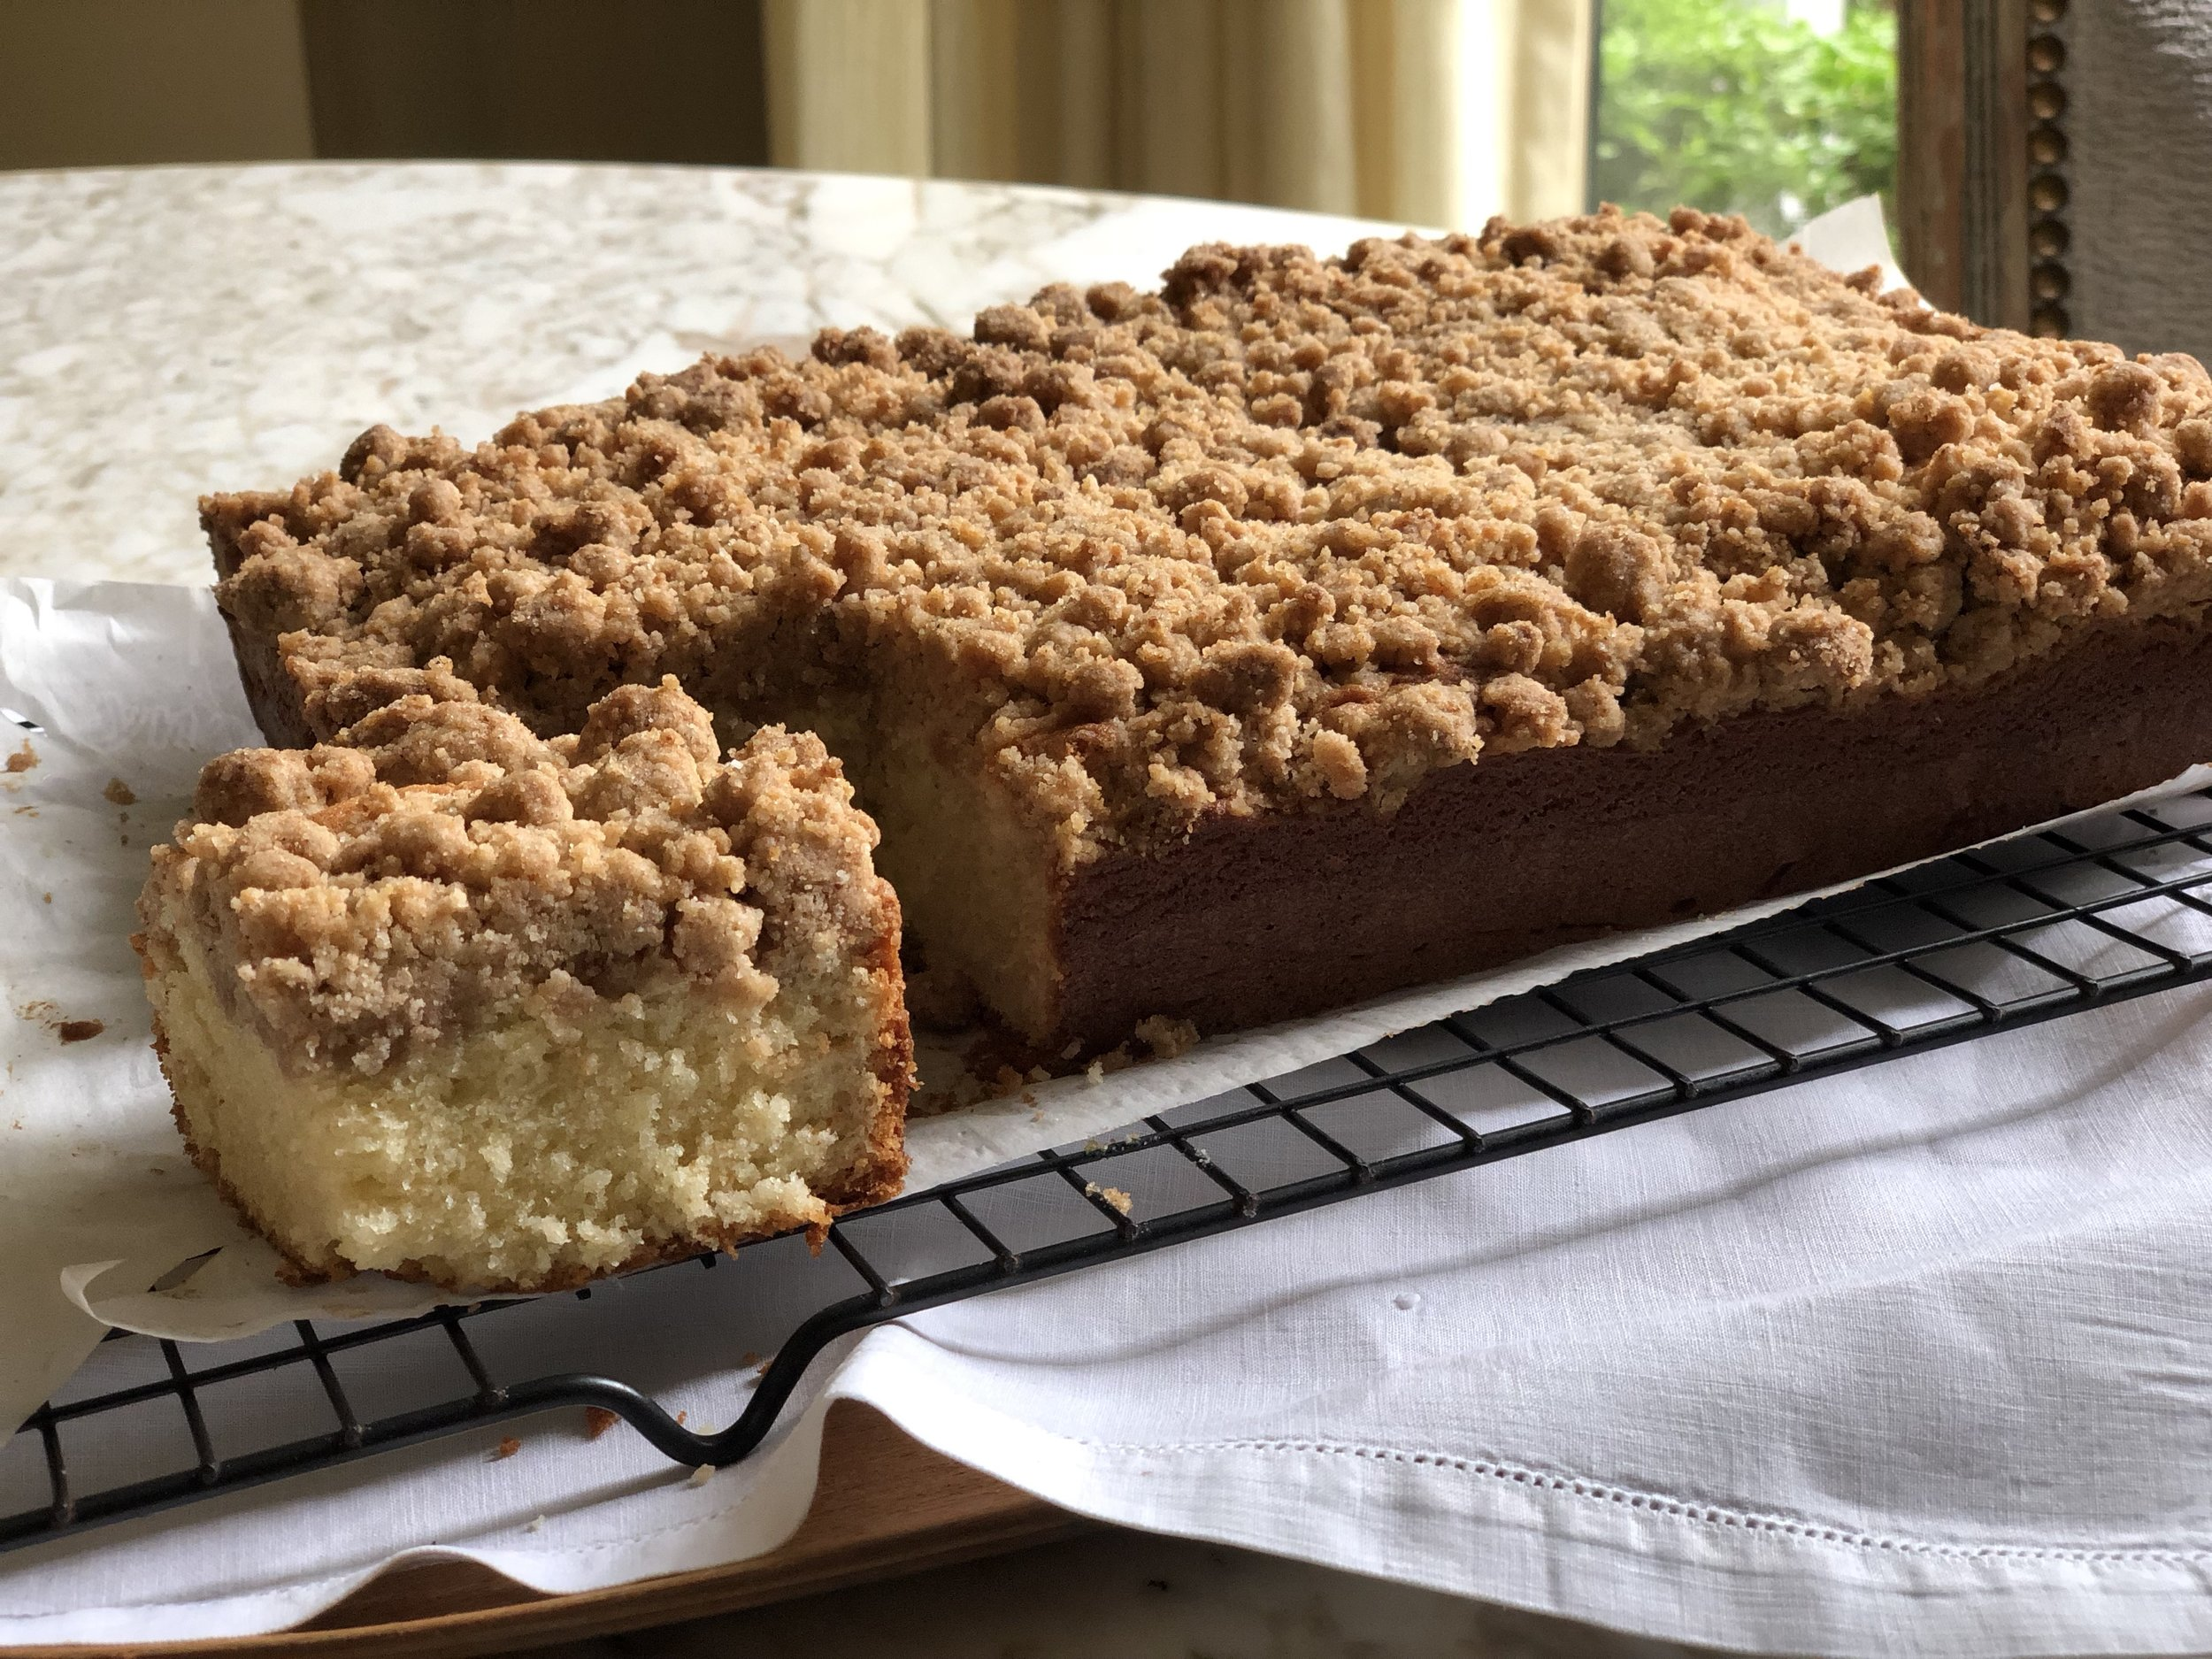 A beautiful crumb cake as is!